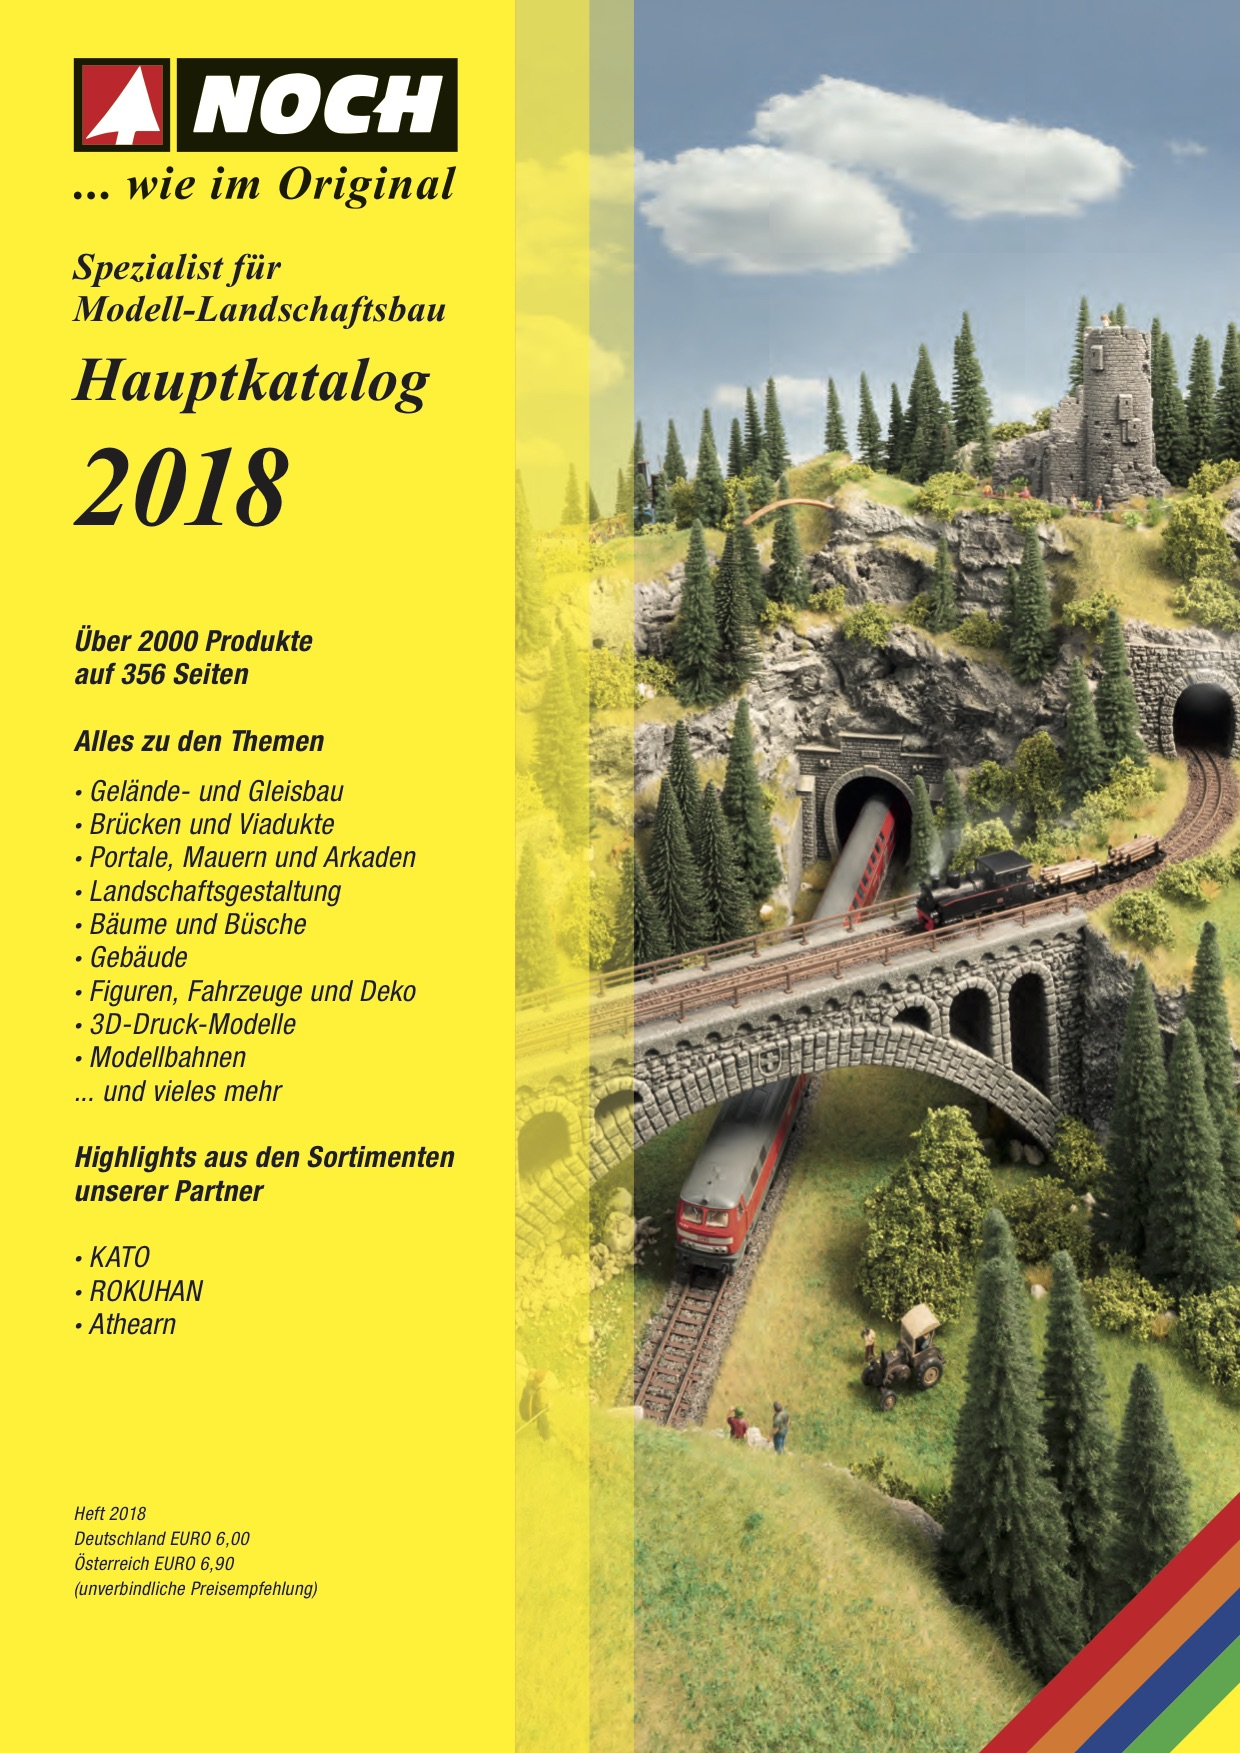 NOCH Katalog (Catalogue) 2018